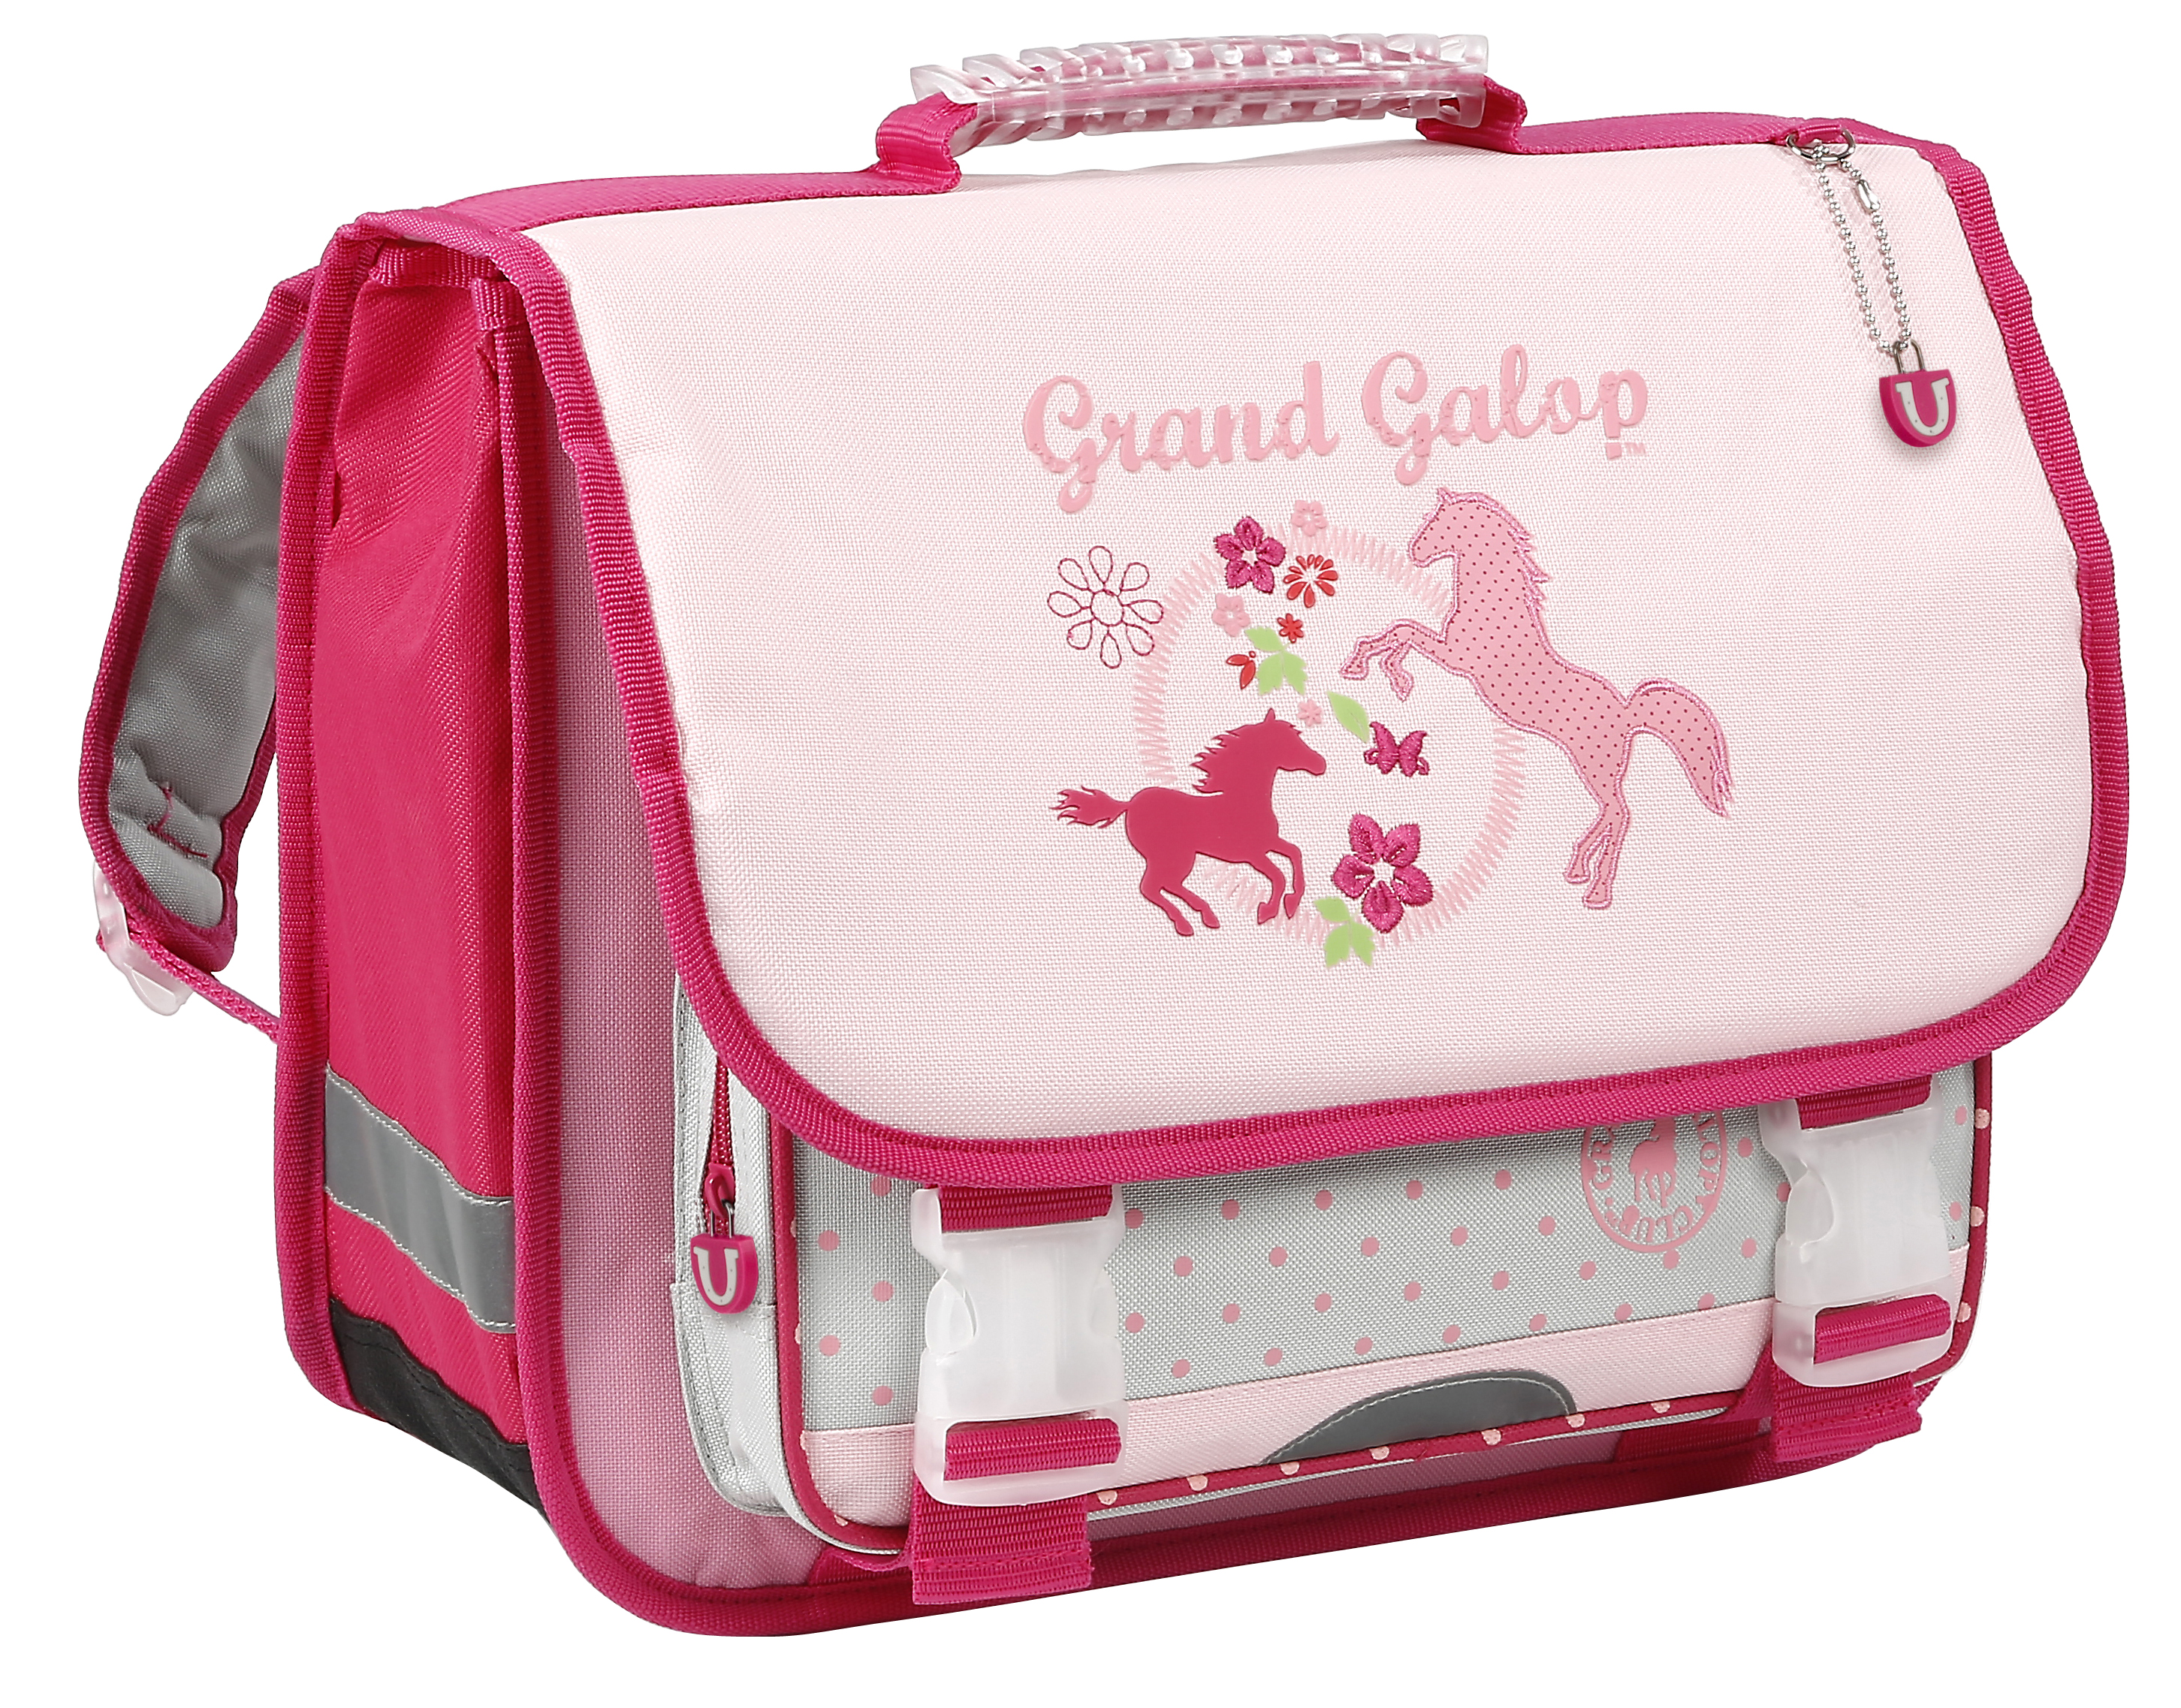 cartable_Grand_Galop_Viquel